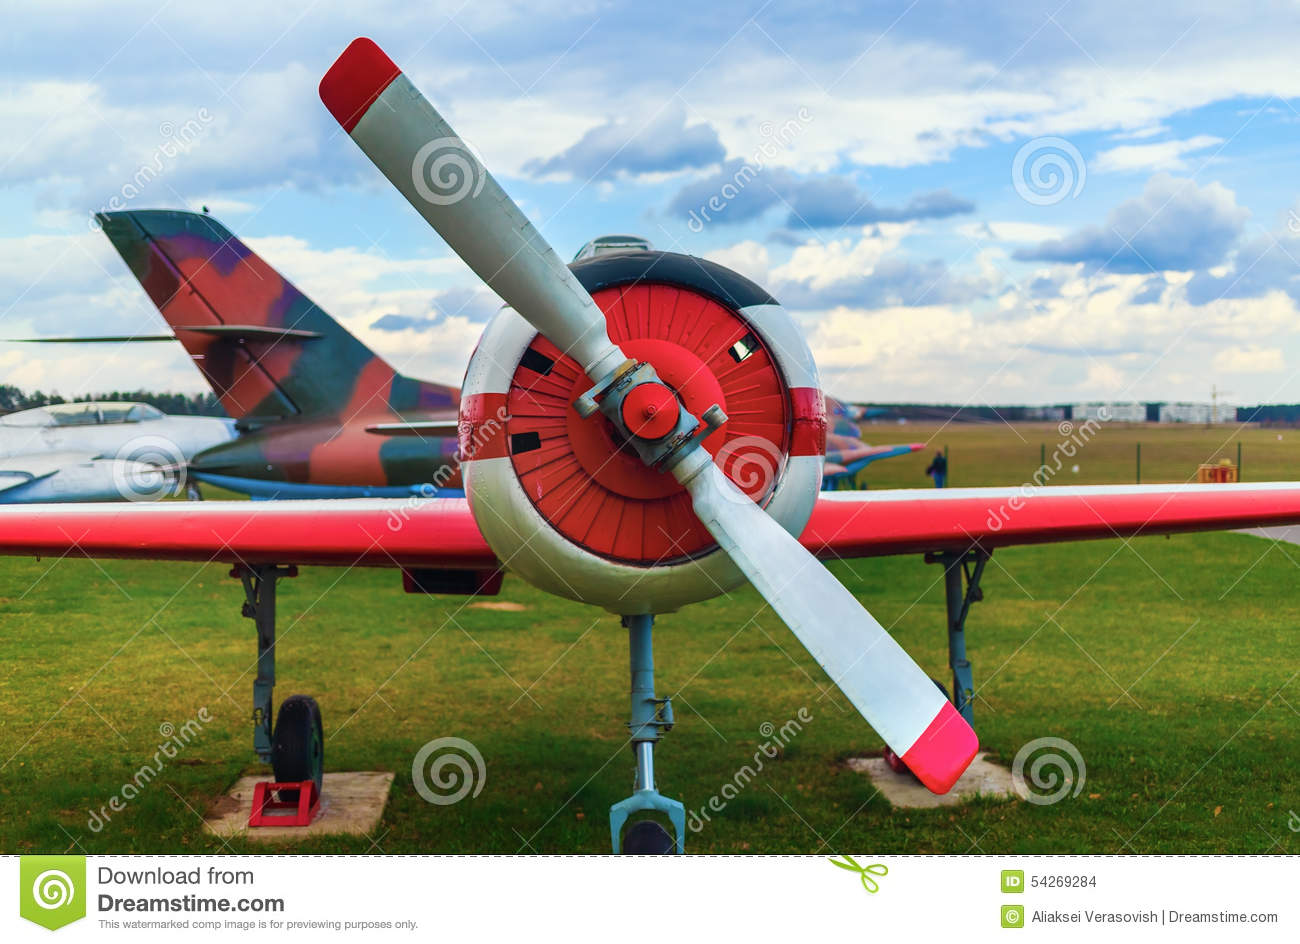 Old airplanes stock photo. Image of cockpit, plane, design ...